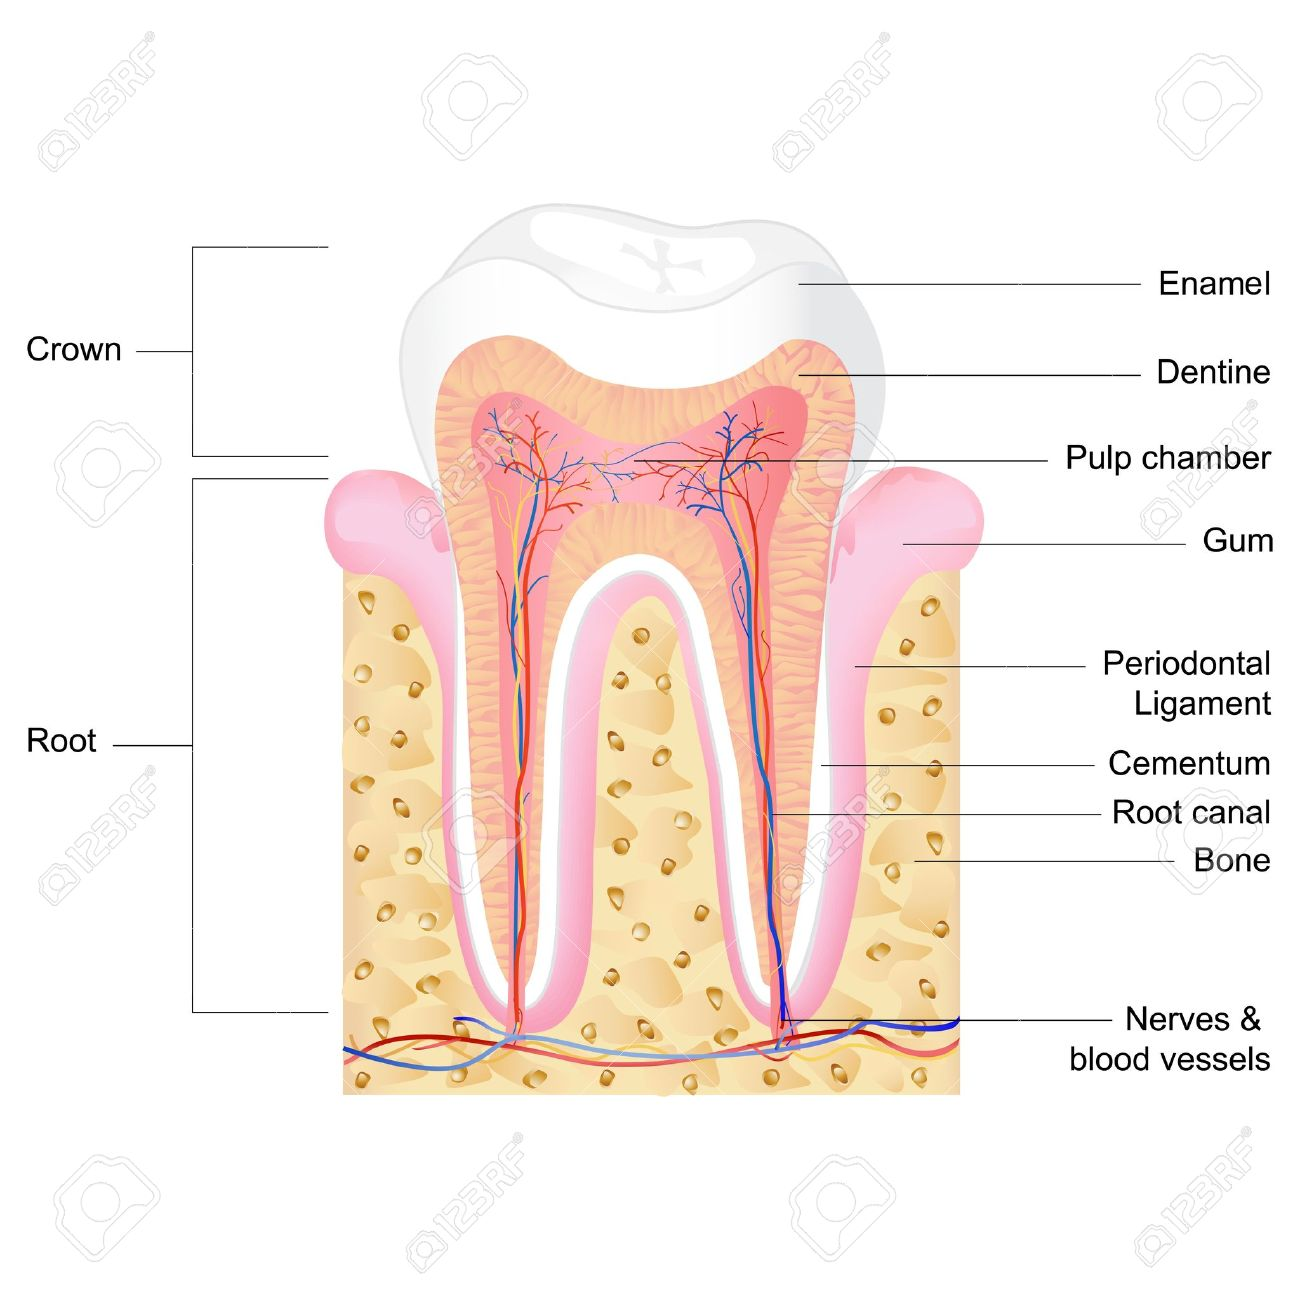 Fabulous Vector Illustration Of Human Tooth Anatomy With Label Royalty Free Wiring Cloud Waroletkolfr09Org